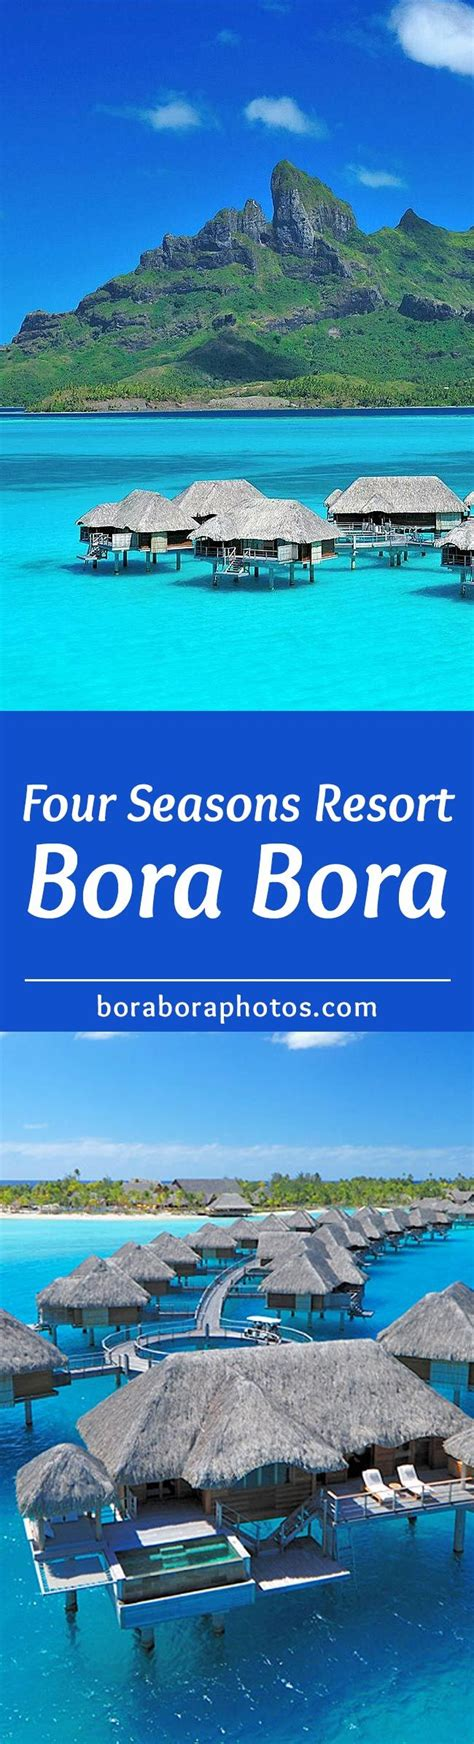 Four Seasons Resort A Pristine Paradise Complete With